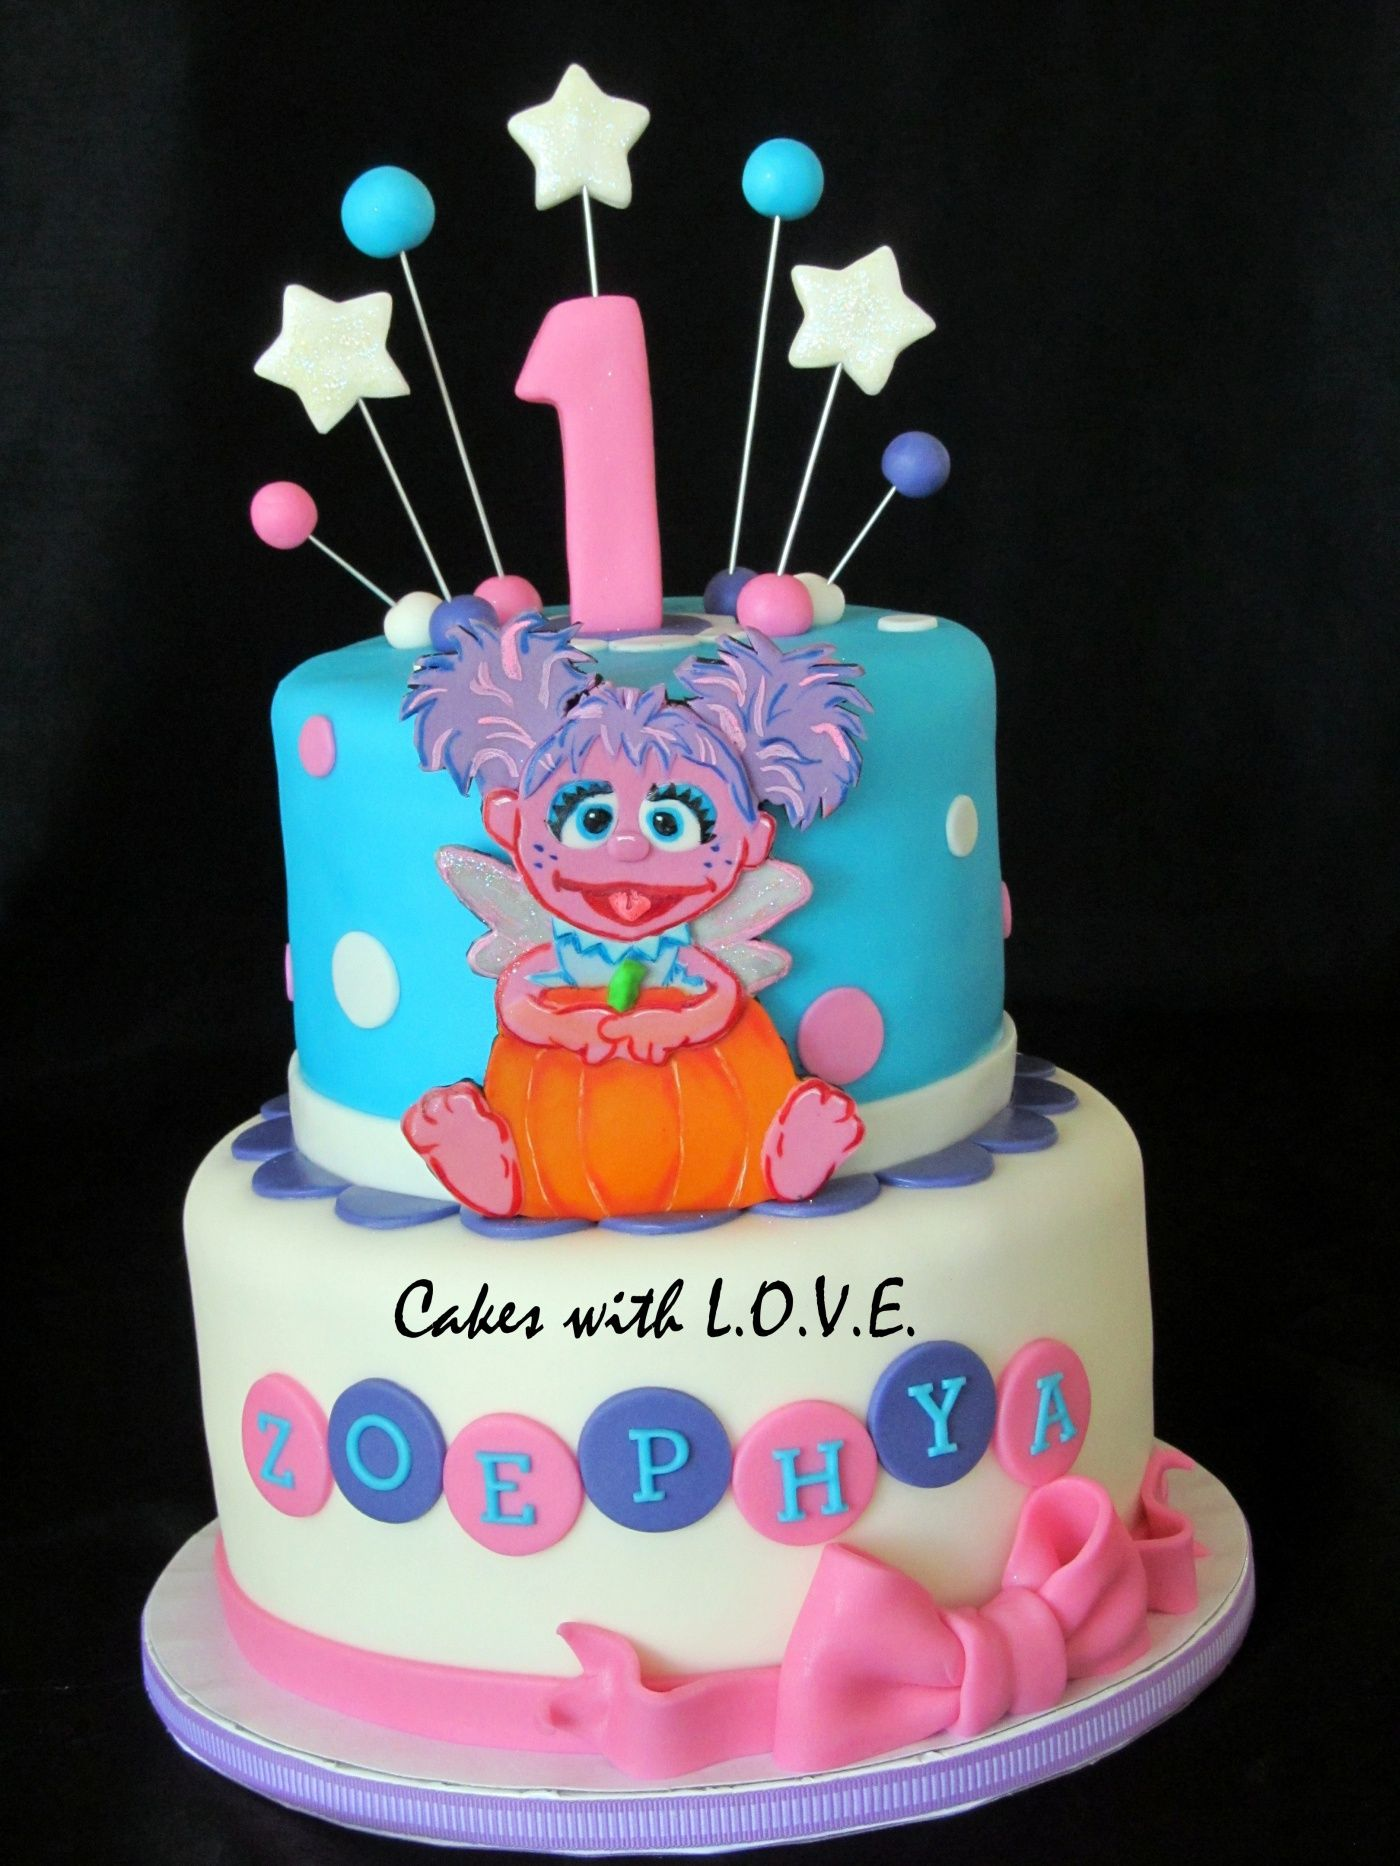 Elmo And Abby Cadabby Cake CAKES I HAVE MADE Pinterest Elmo - Elmo and abby birthday cake